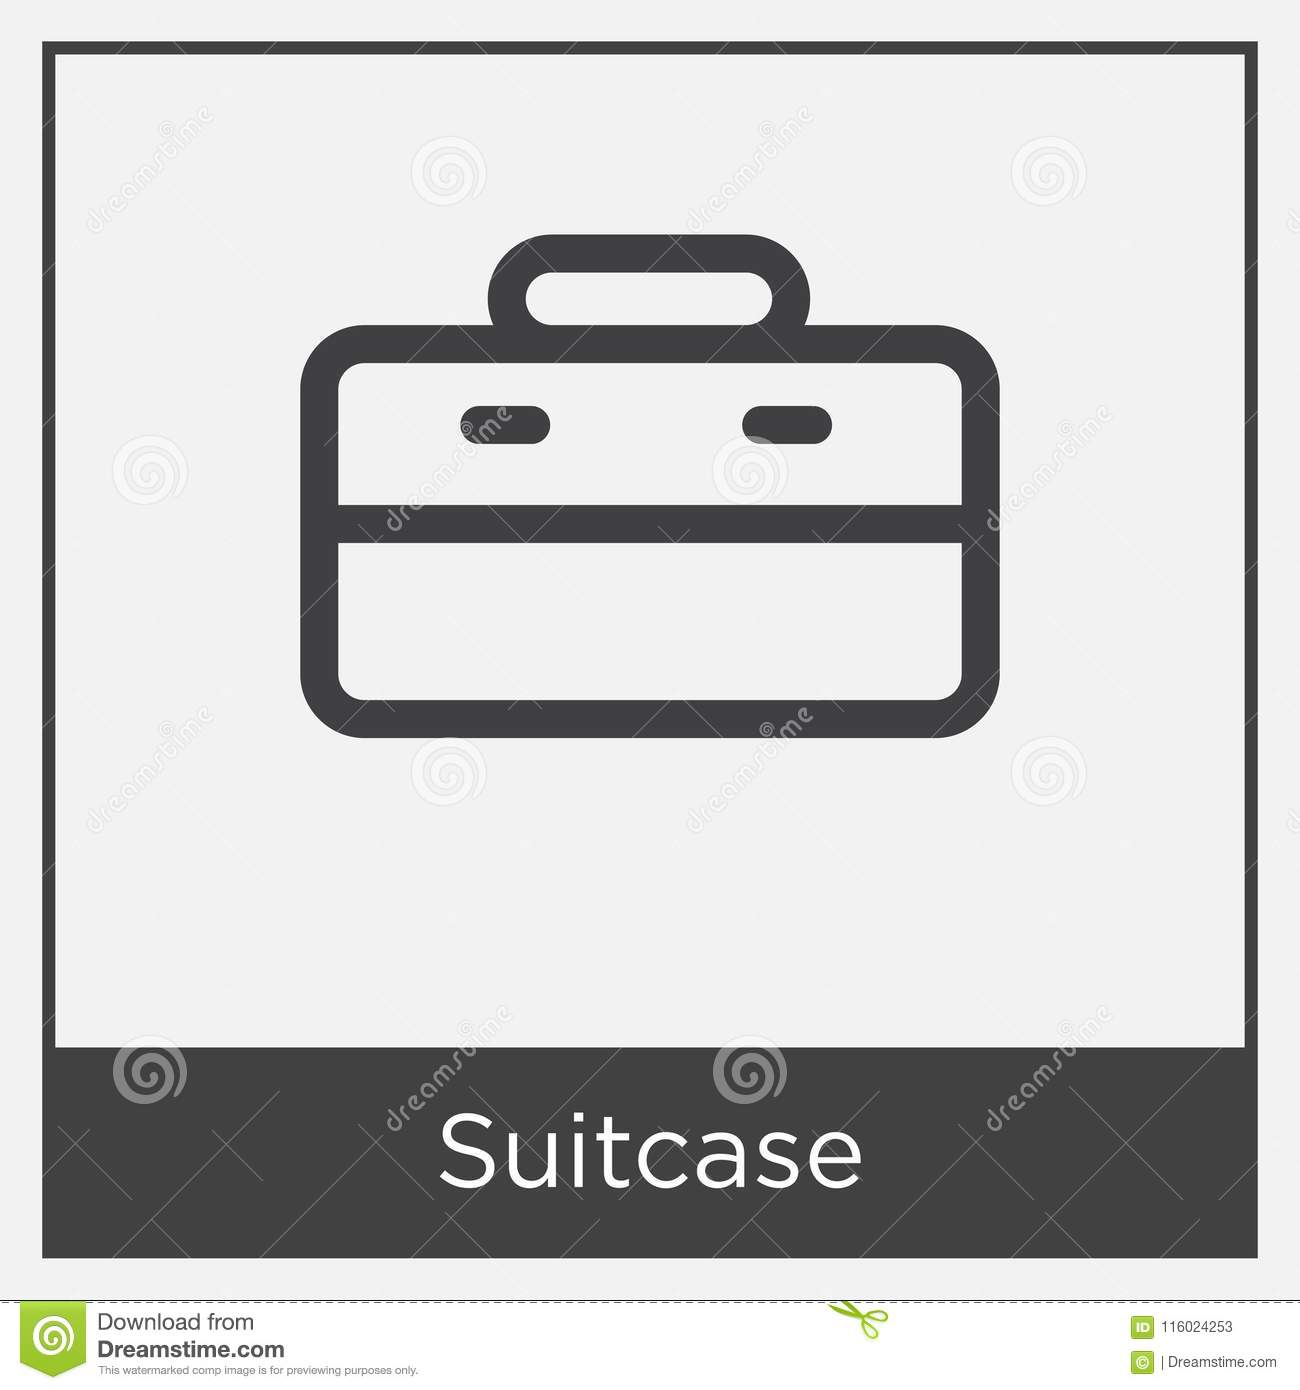 Suitcase Icon Isolated On White Background Stock Illustration ...